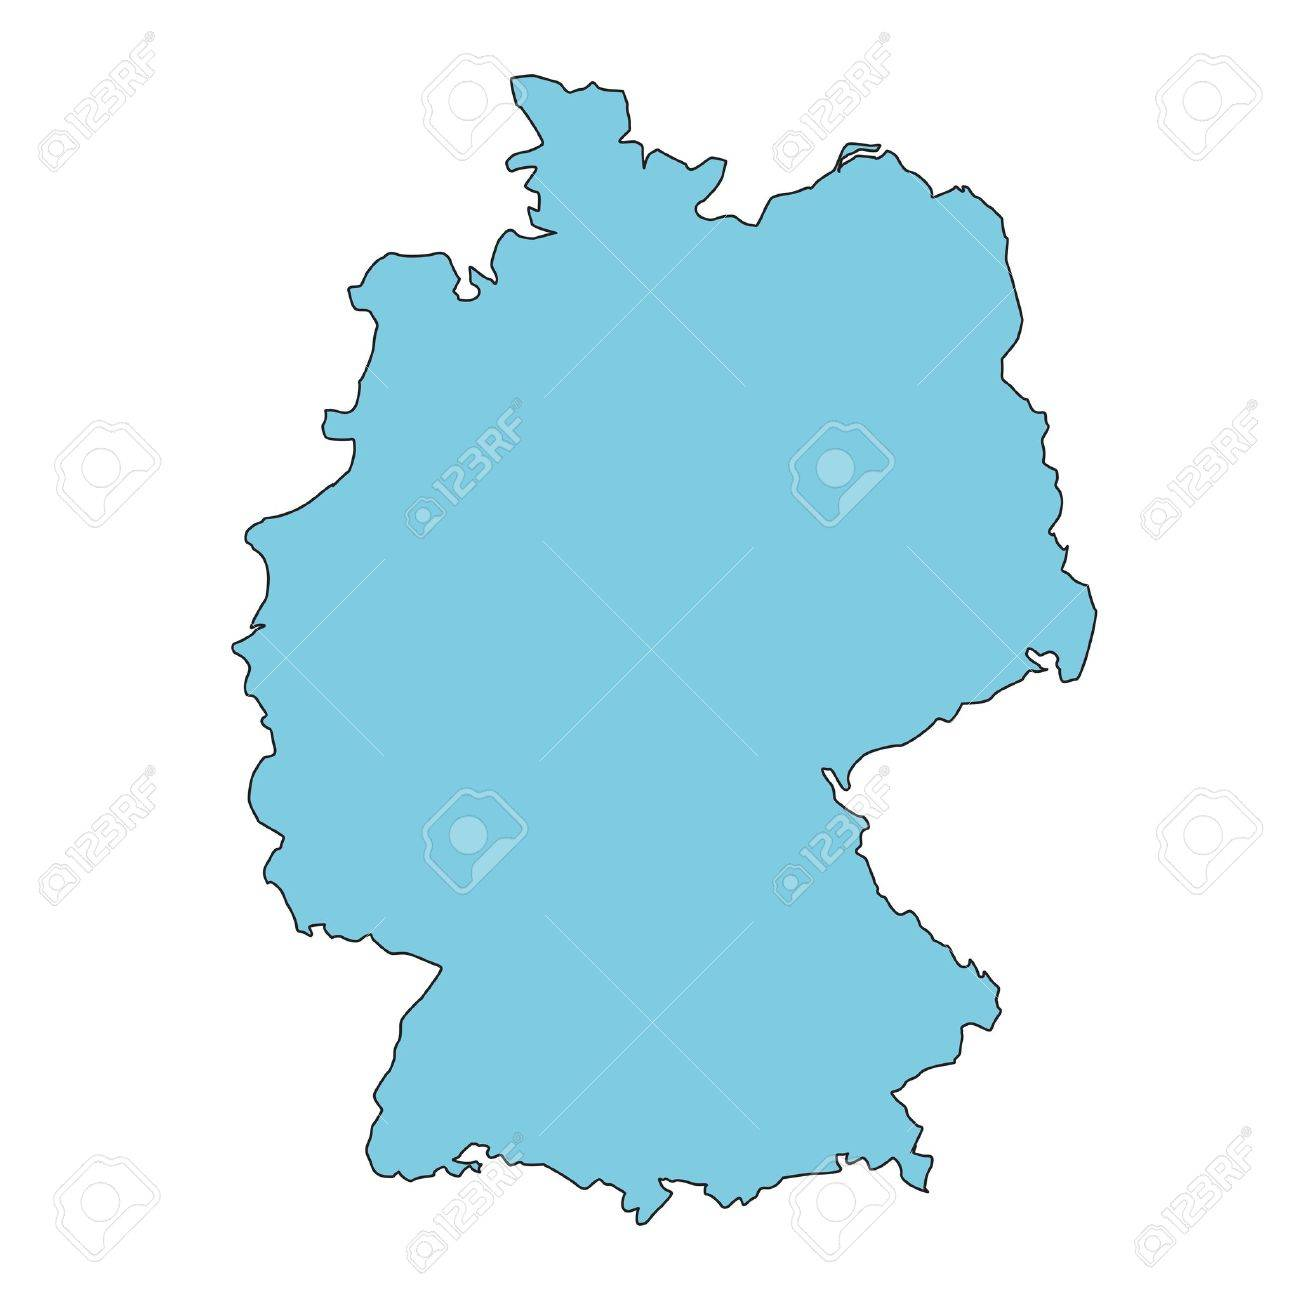 Germany clear map Standard-Bild - 11237742